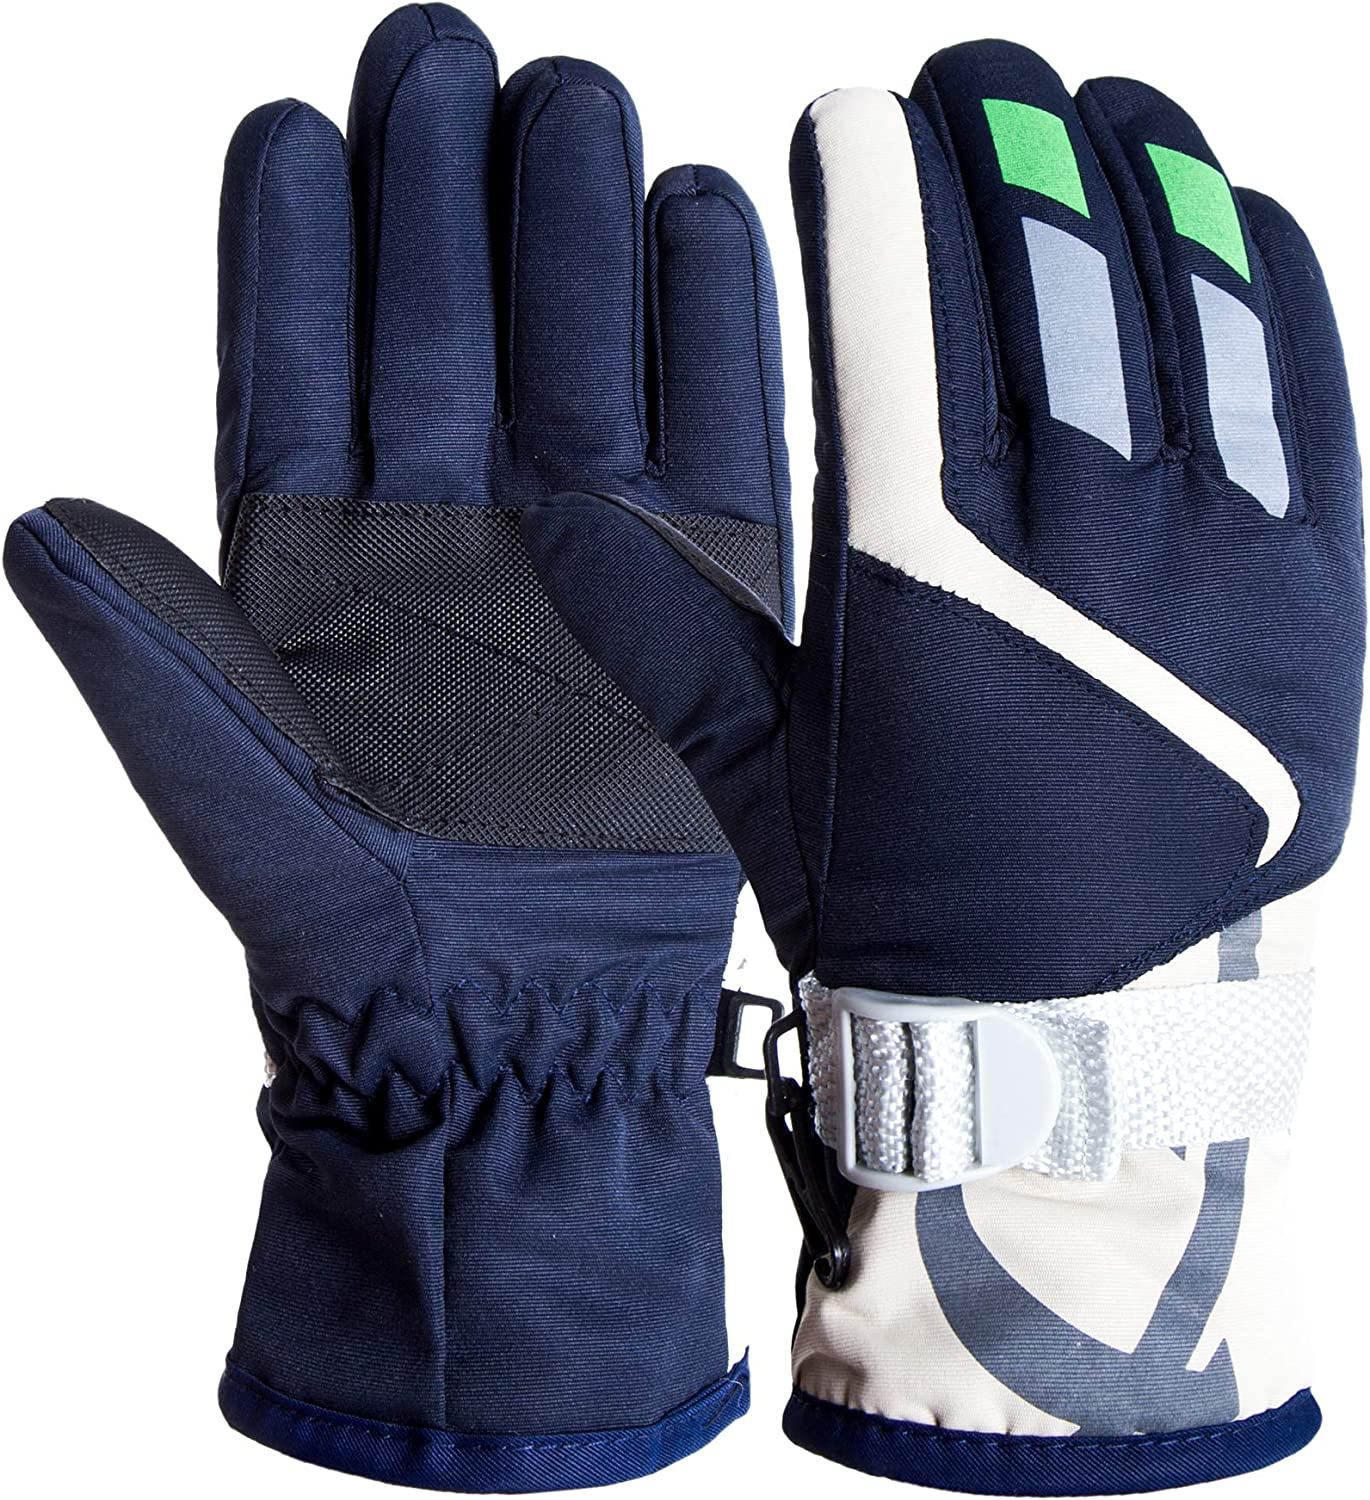 Kids Ski Gloves Winter Warm Lining Snow Cold Weather Windproof Waterproof Adjustable Gloves for Boys & Girls 2-5Years : Sports & Outdoors